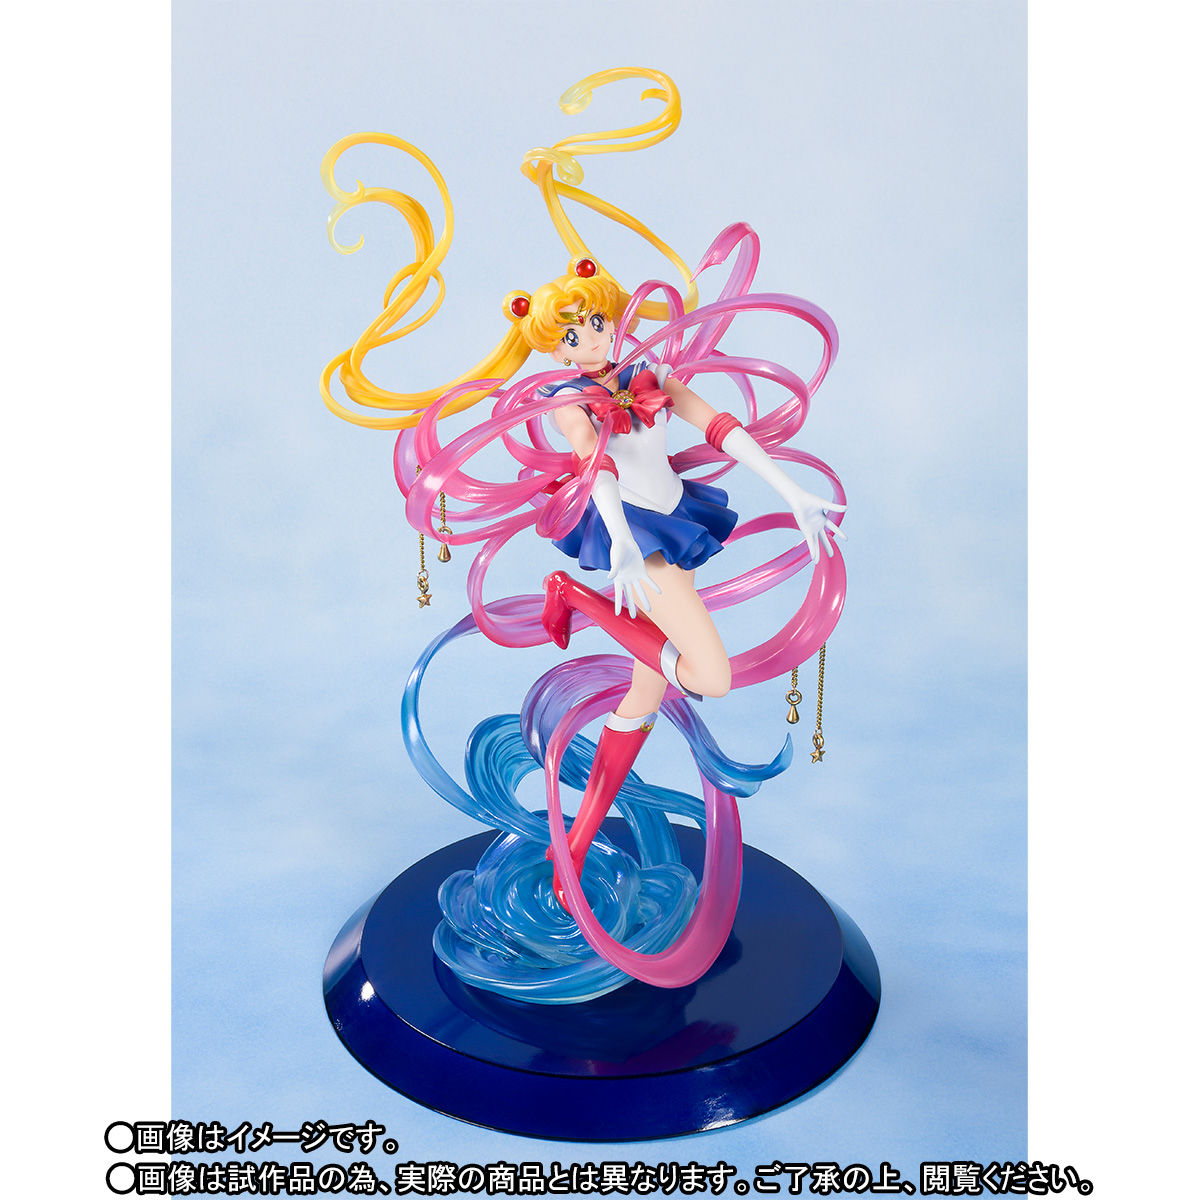 Figuarts Zero chouette『セーラームーン -Moon Crystal Power, Make Up-』完成品フィギュア-004